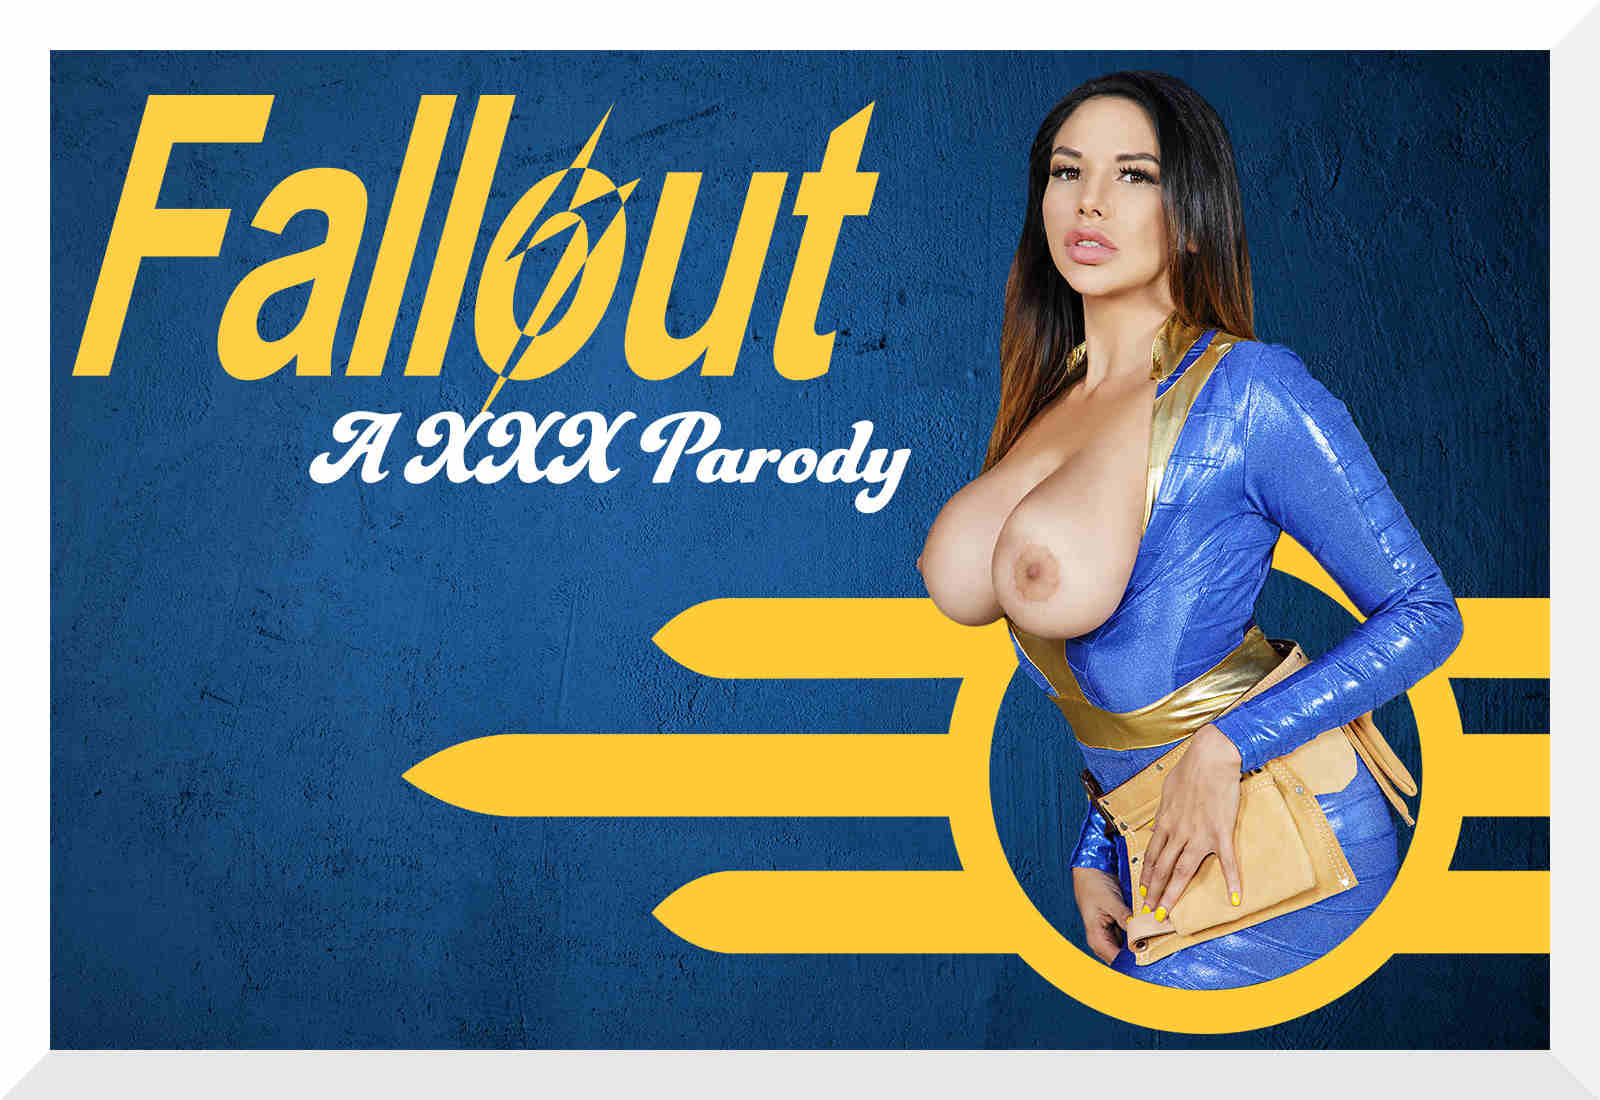 Fallout A XXX Parody is a December 2017 cosplay VR porn movie starring Missy